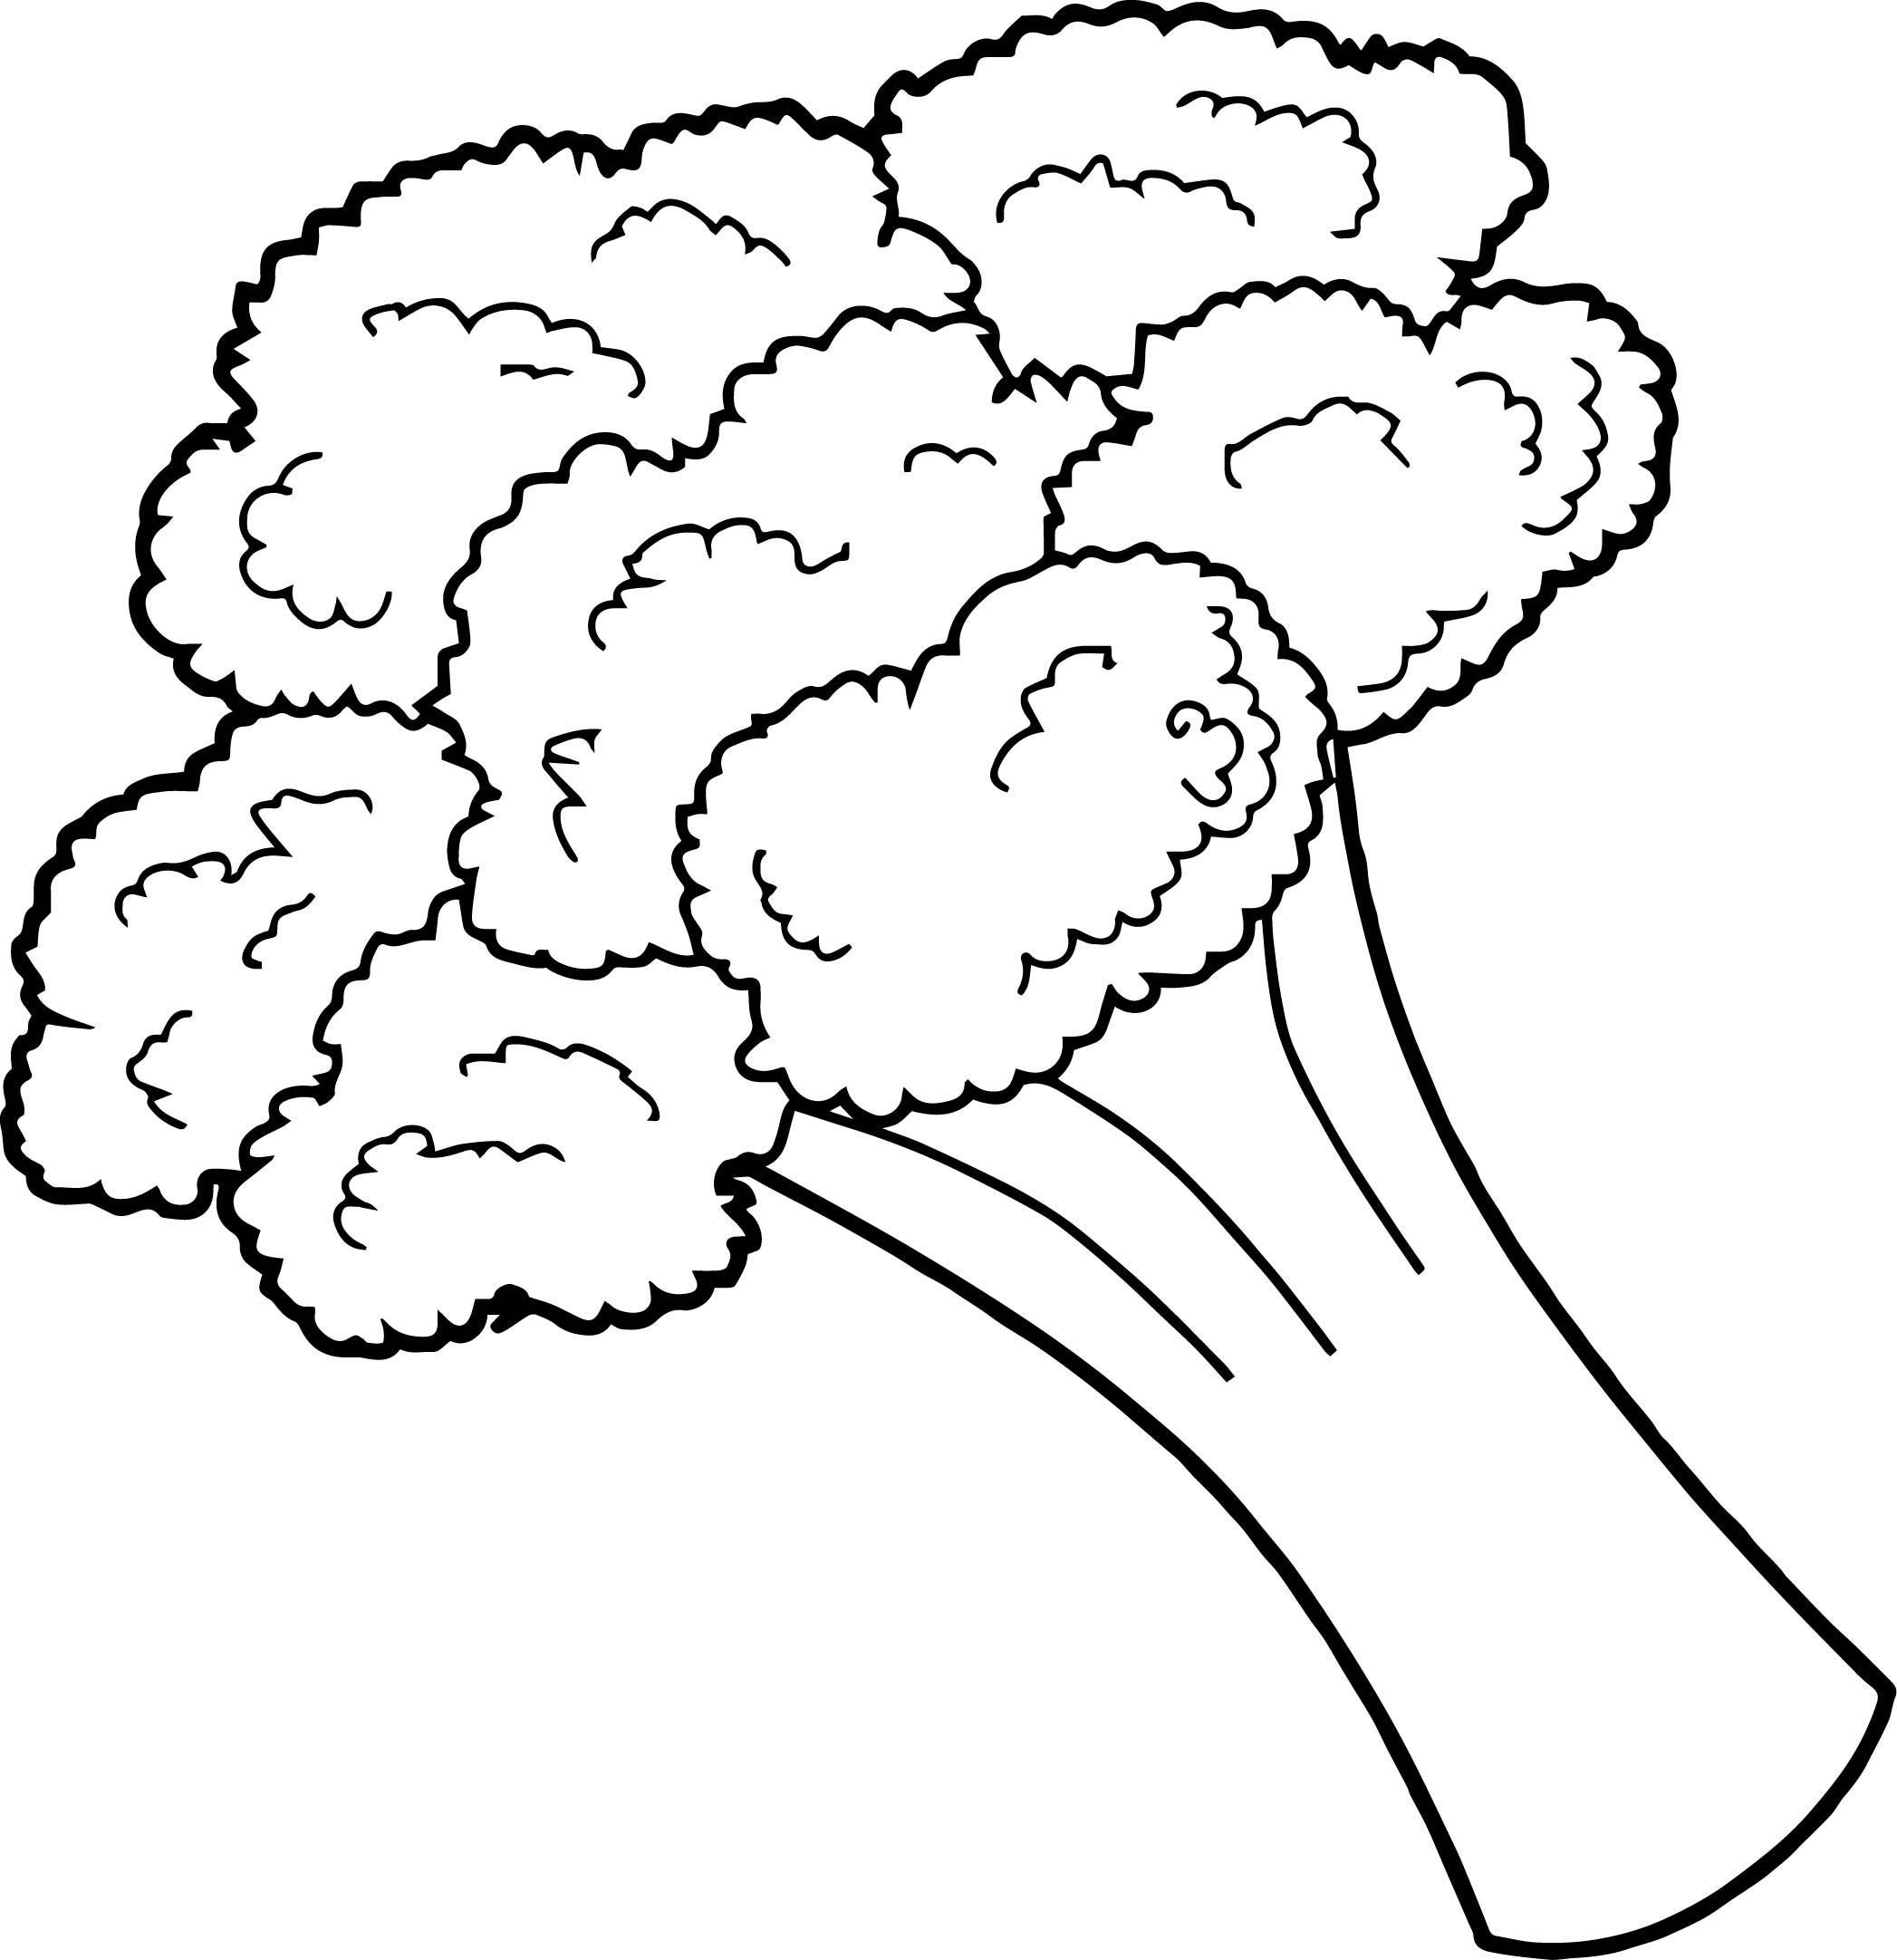 vegetables drawing for coloring vegetable coloring pages for childrens printable for free for drawing coloring vegetables